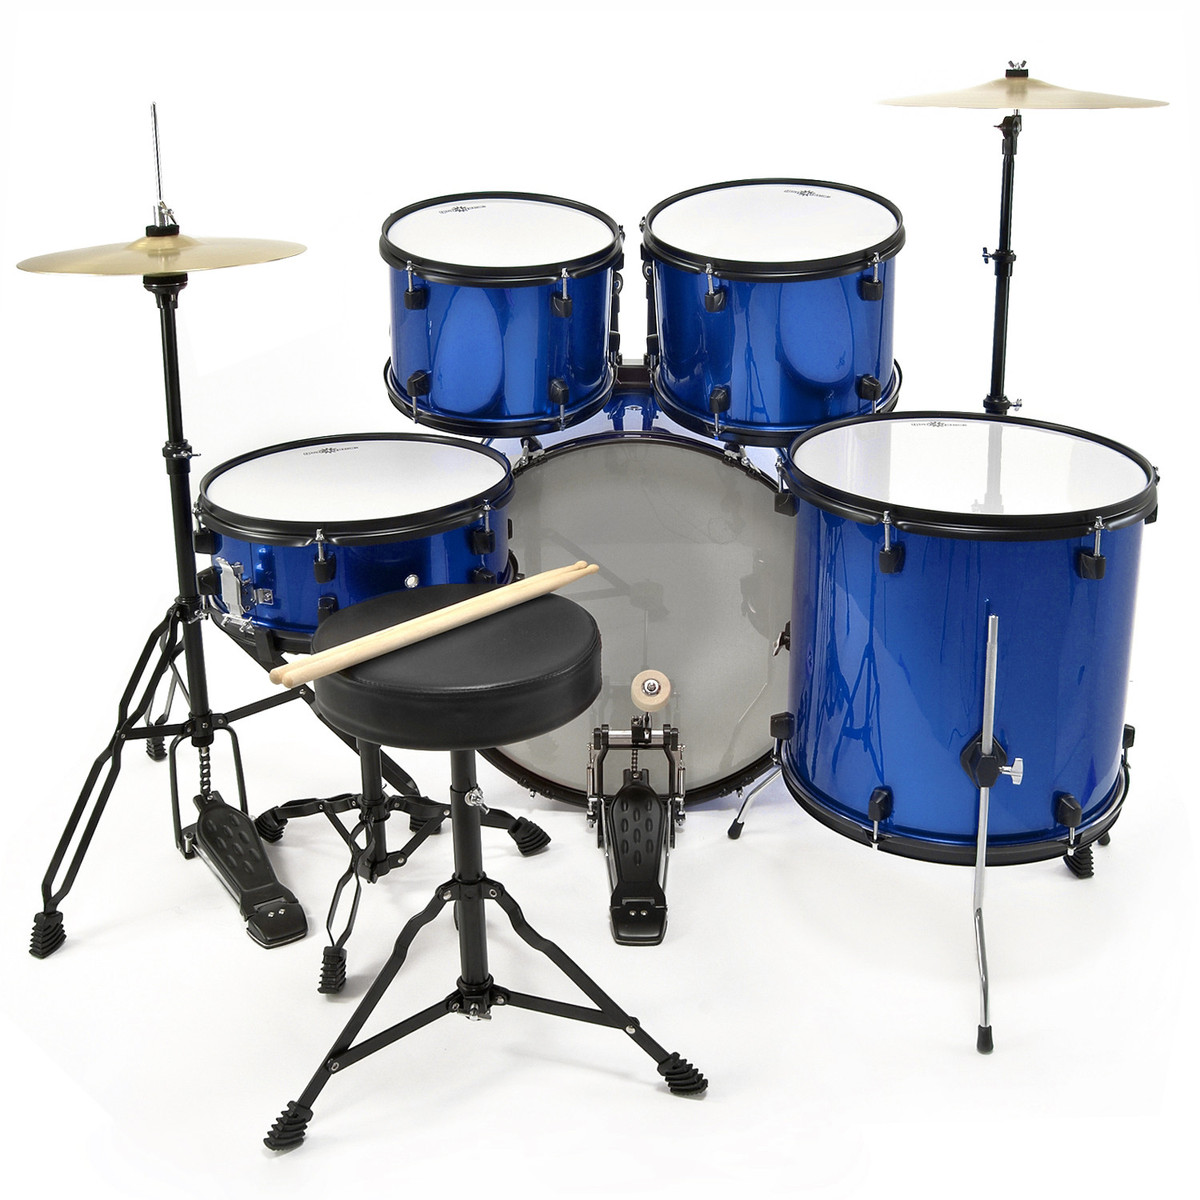 bdk 1 full size starter drum kit by gear4music blue b stock at gear4music. Black Bedroom Furniture Sets. Home Design Ideas